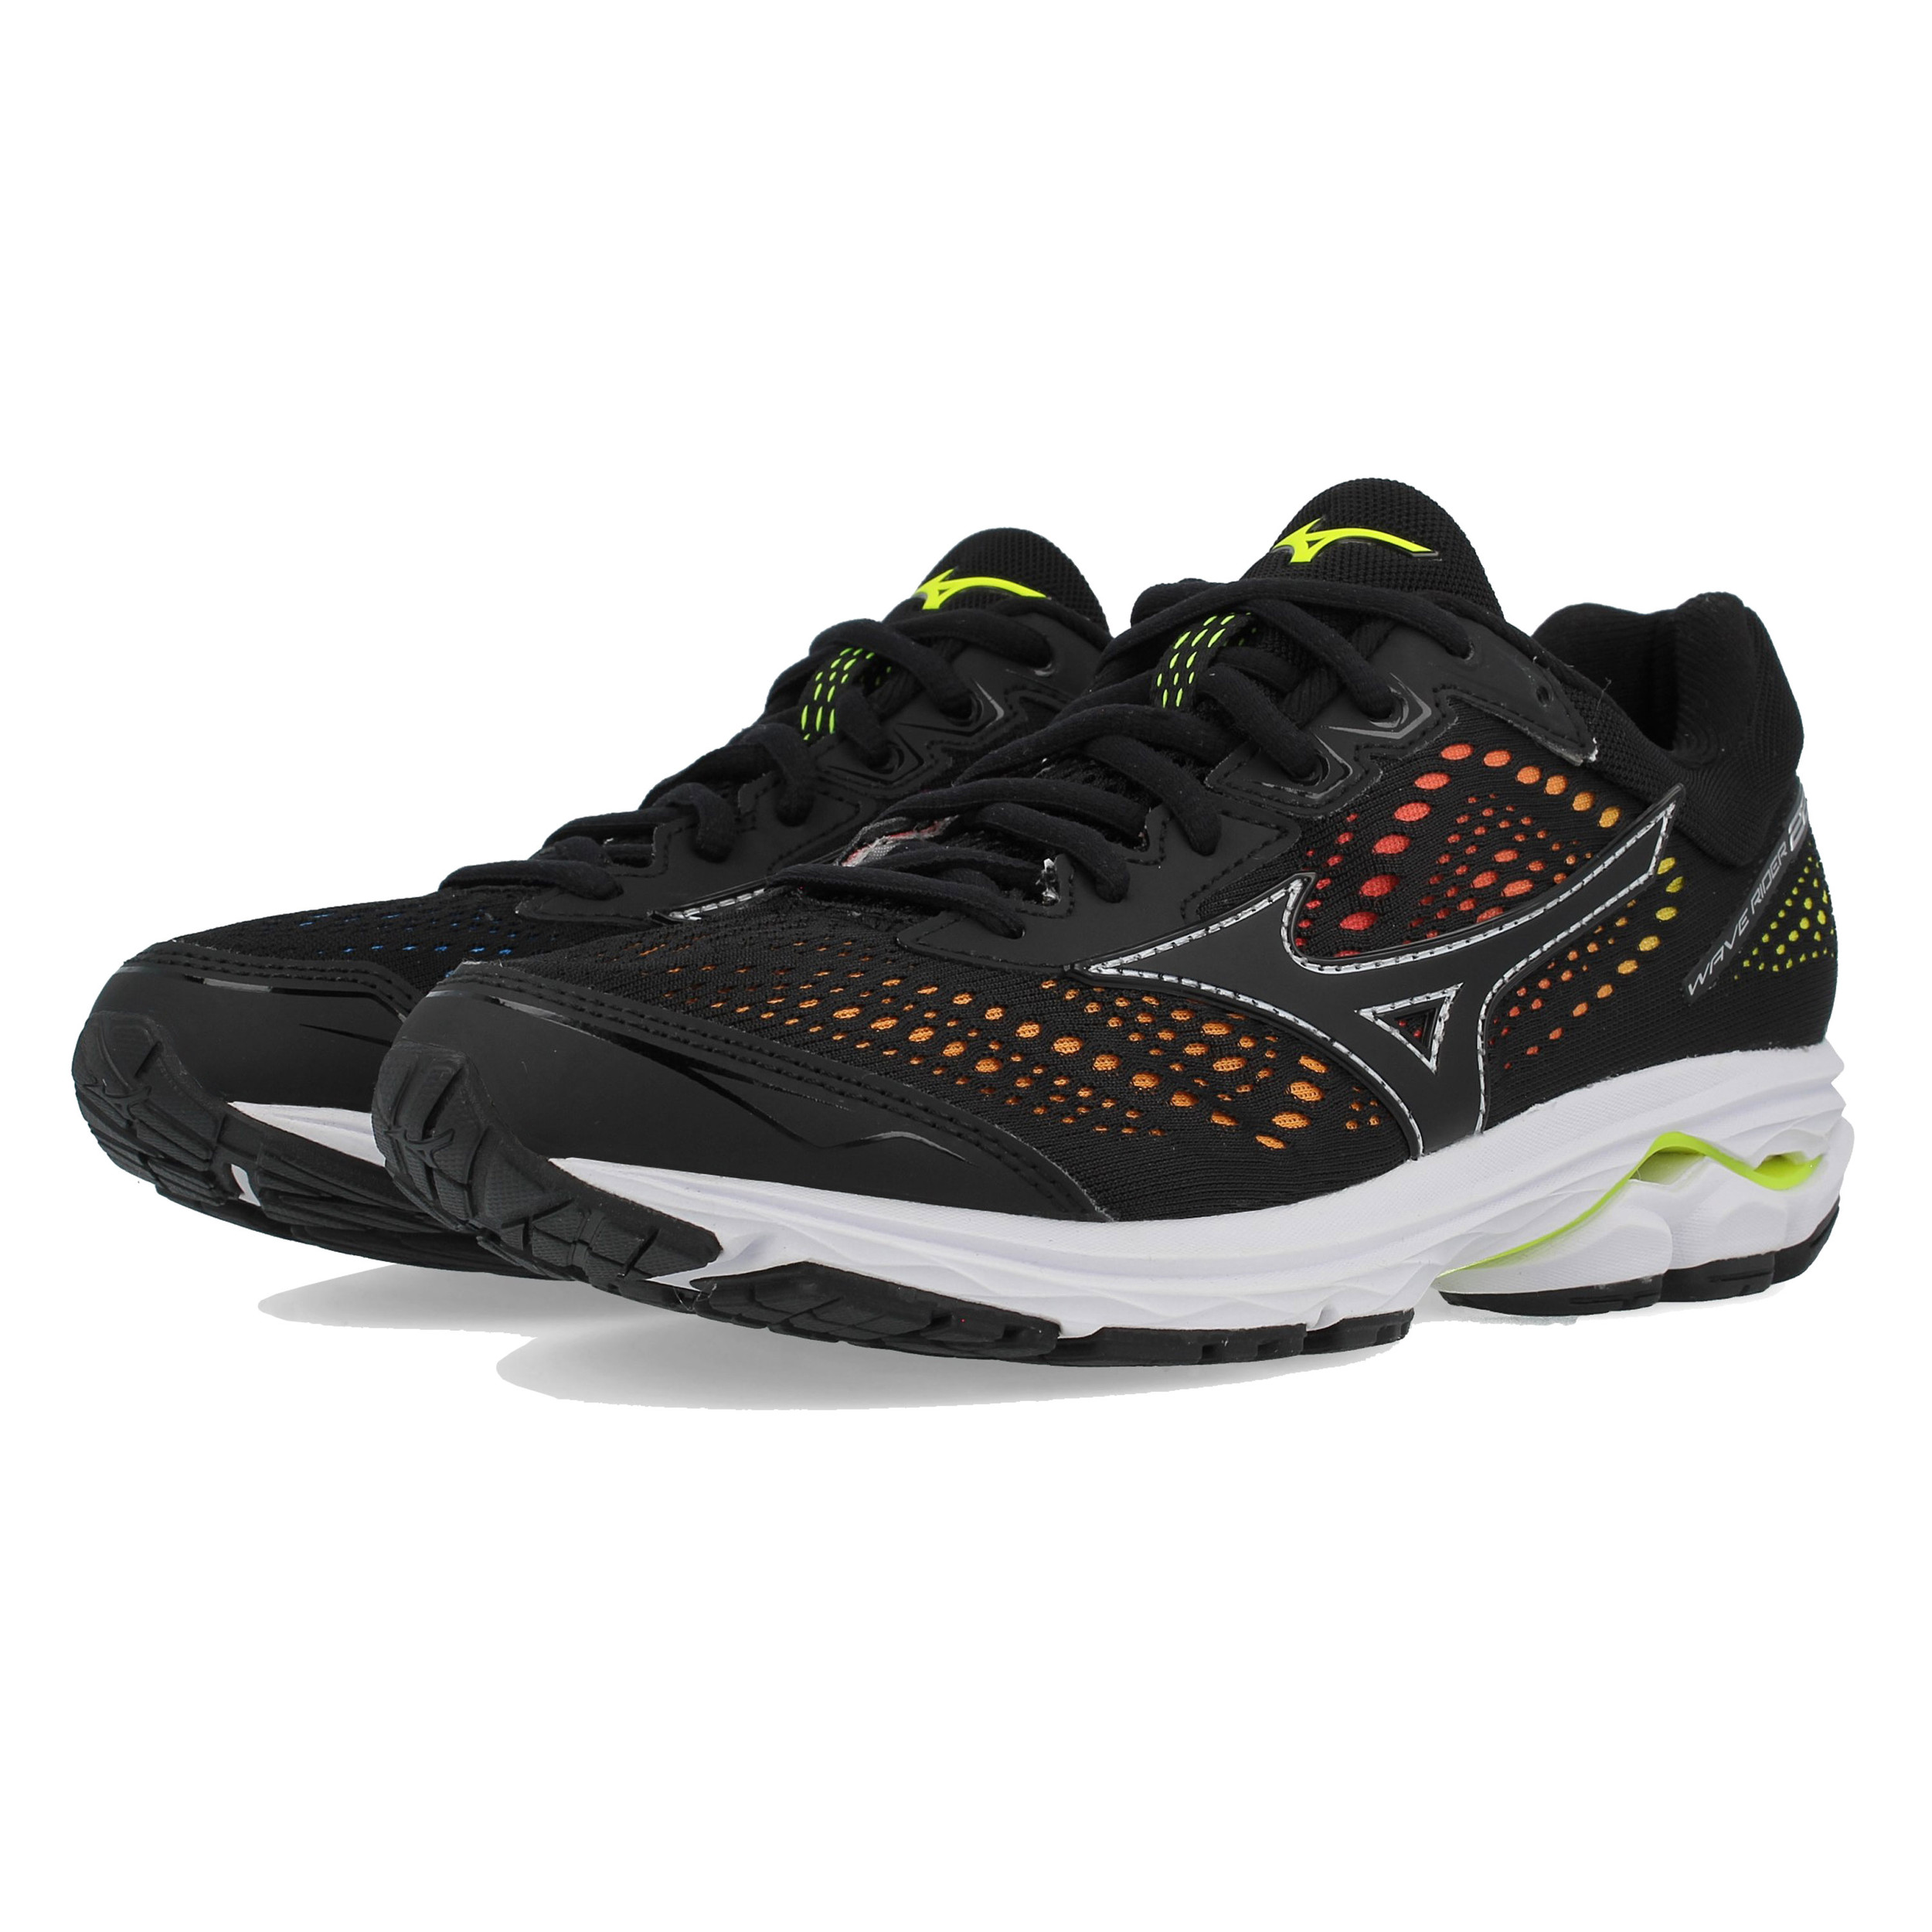 Details about Mizuno Womens Wave Rider 22 Osaka Running Shoes Trainers  Sneakers Black Sports 82f877d479c3